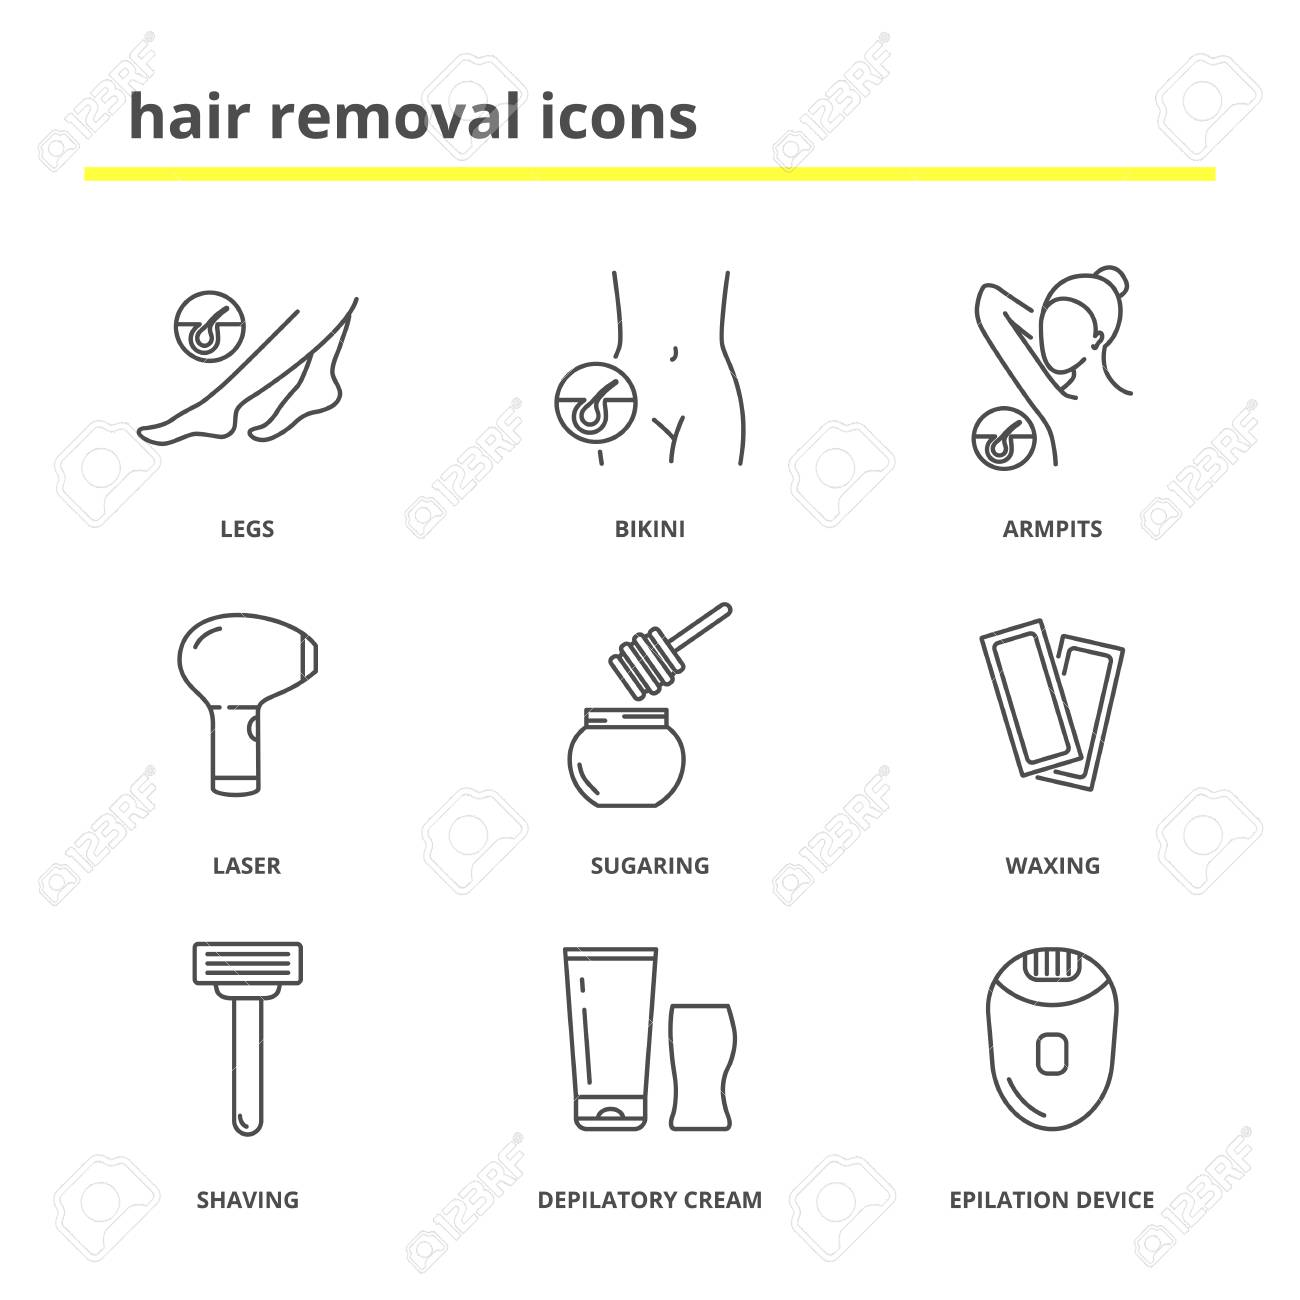 Hair Removal Icons: Legs, Bikini, Armpits, Laser, Sugaring, Waxing,shaving,..  Royalty Free Cliparts, Vectors, And Stock Illustration. Image 90921749.123RF.com